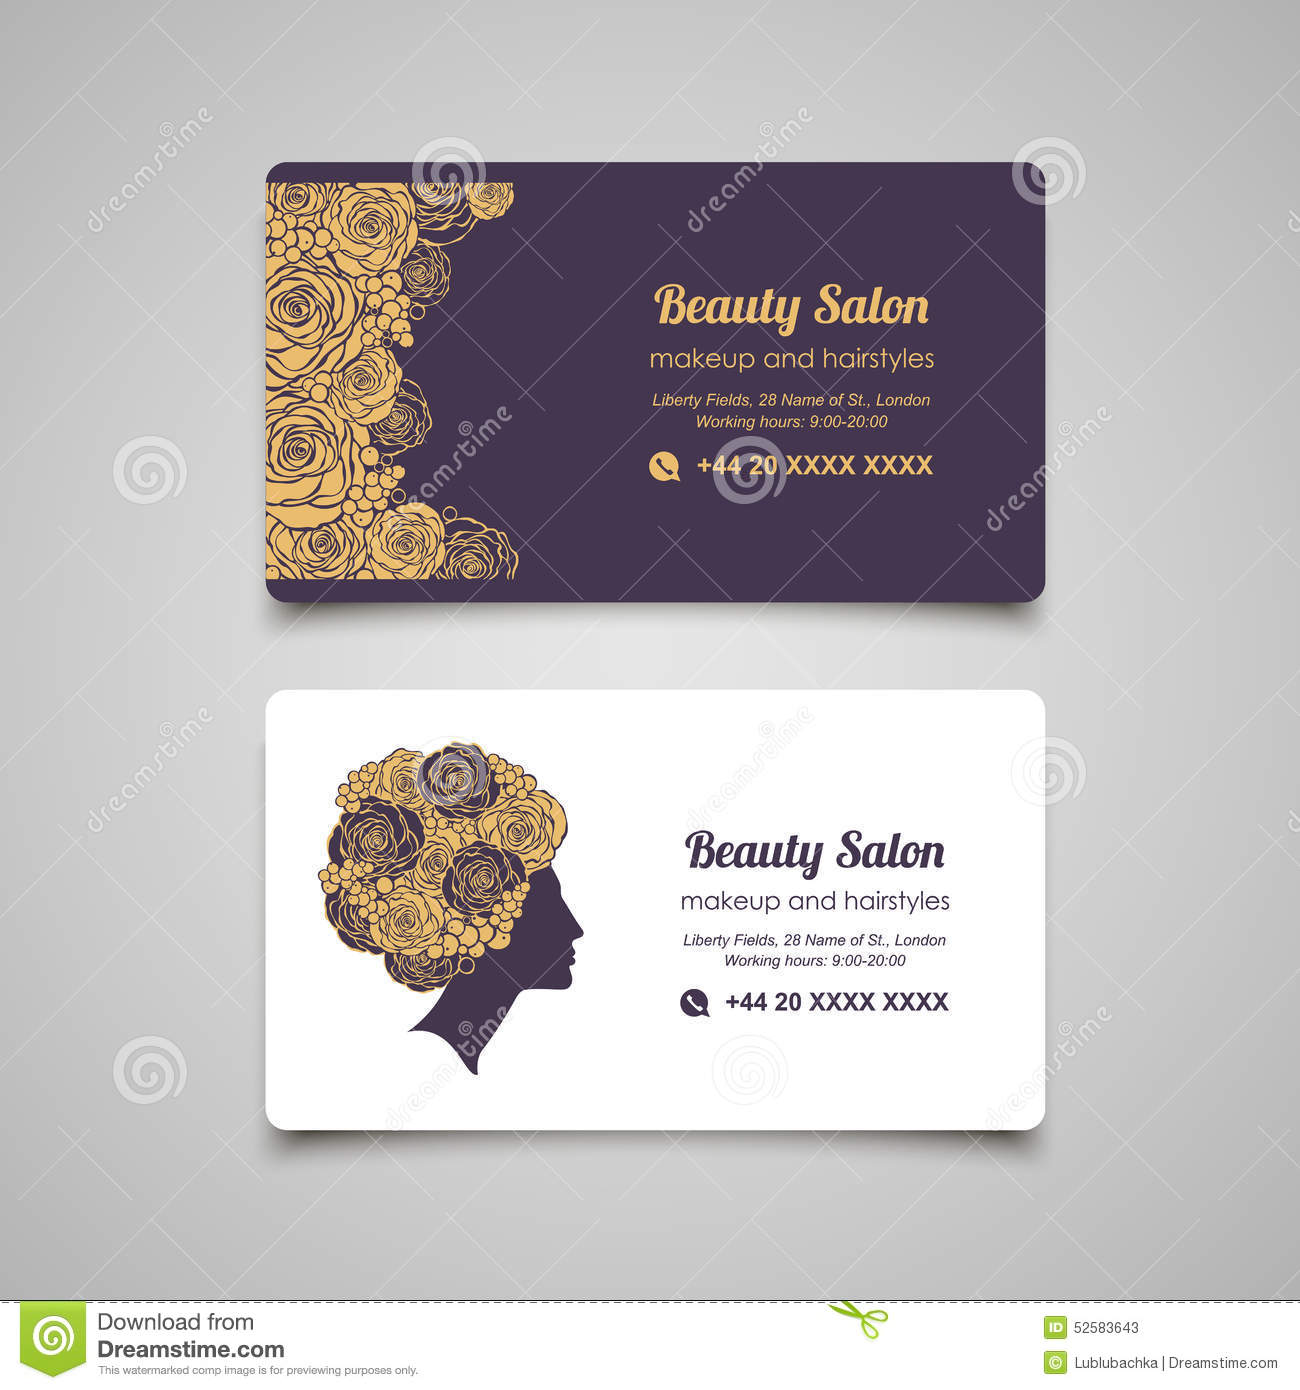 Beauty Salon Luxury Business Card Design Template With Beautiful - Beautiful business card templates